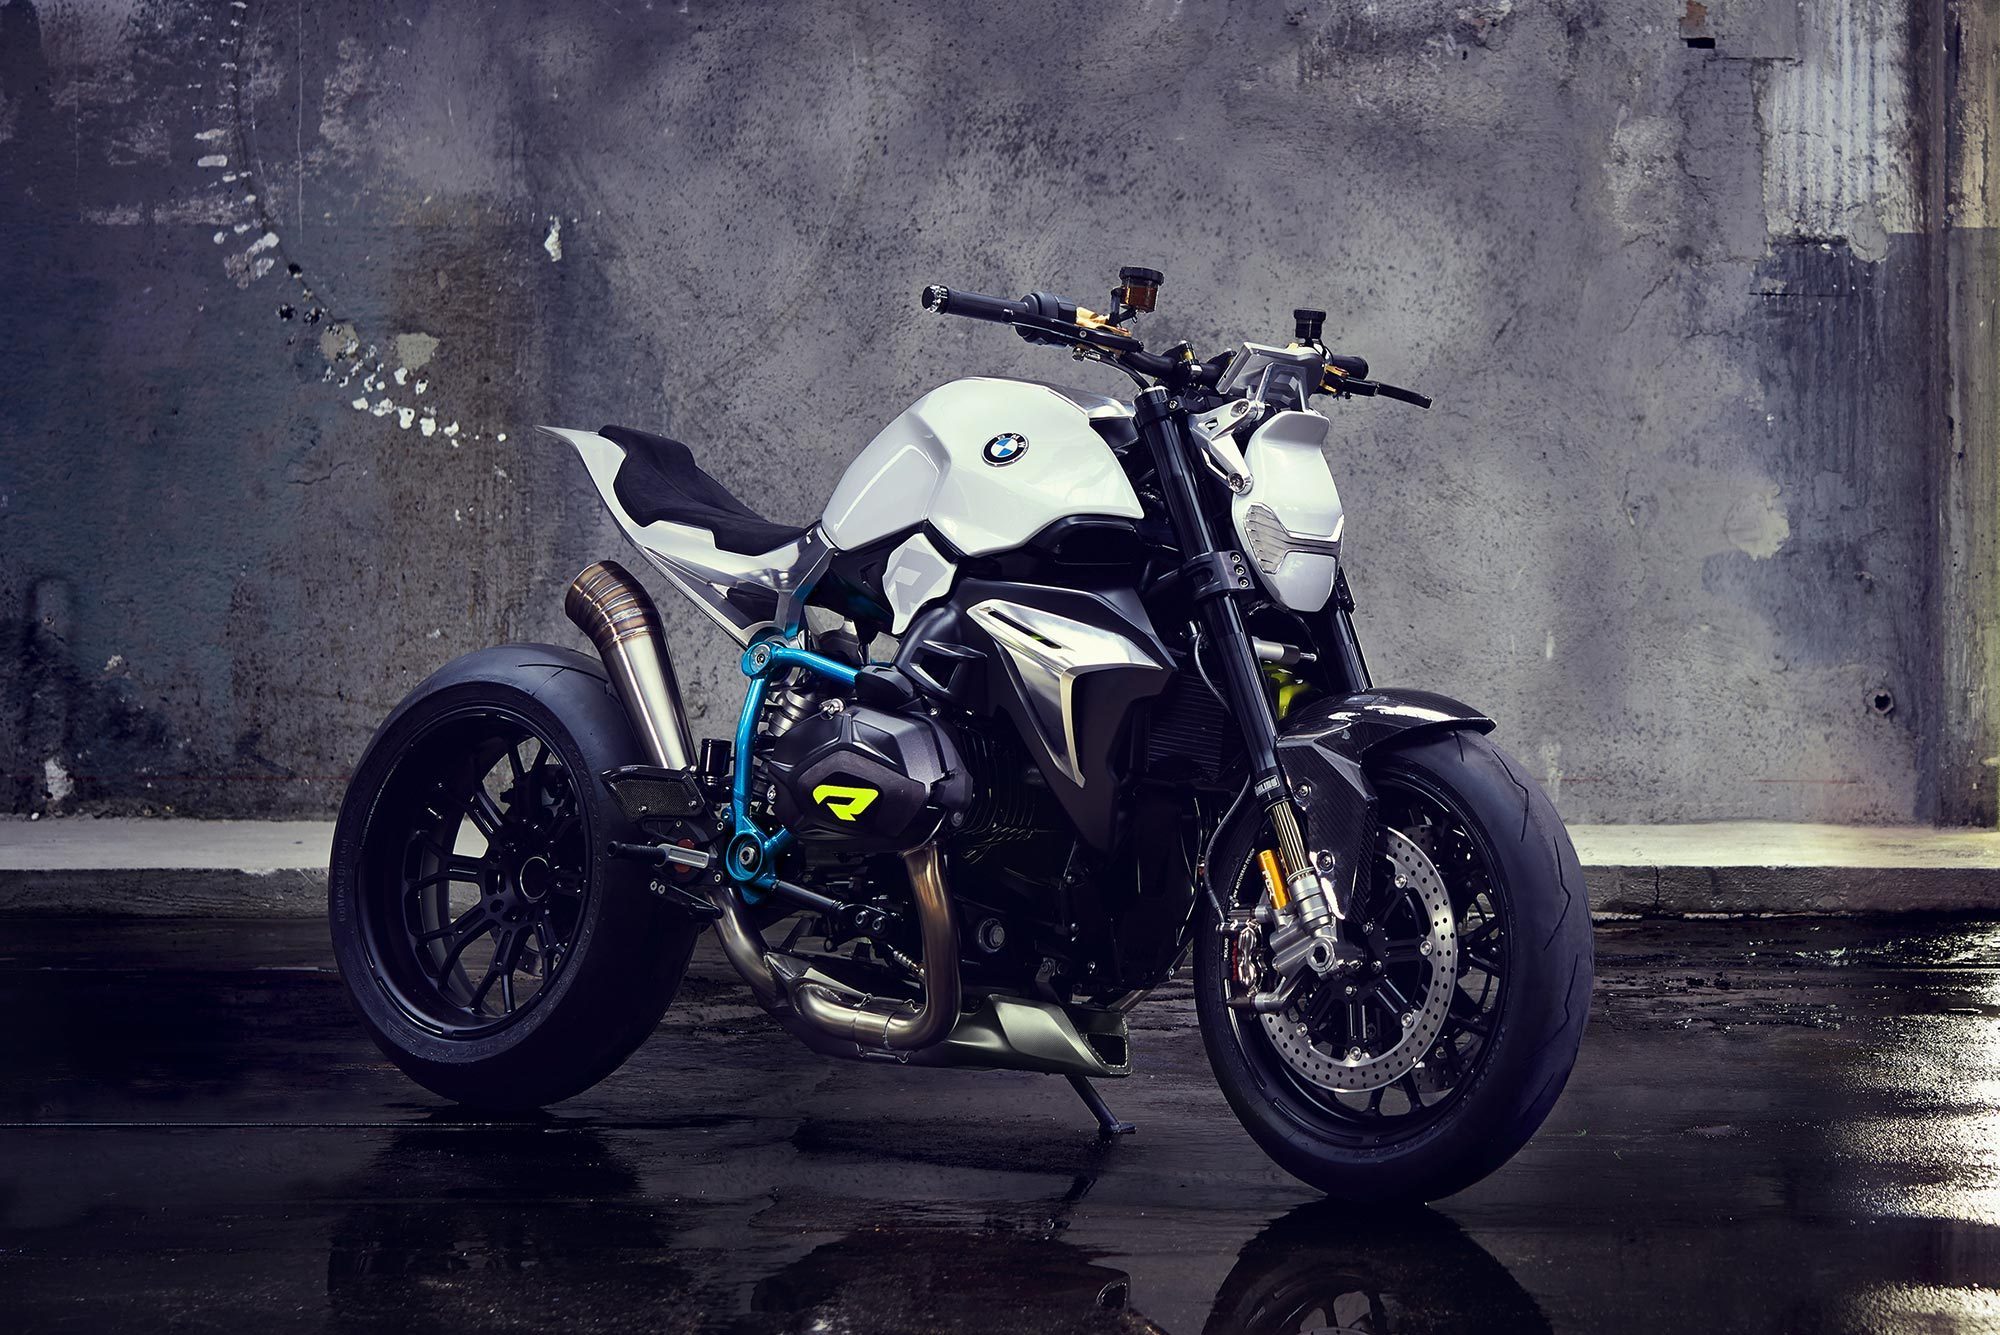 71112 Extraordinary Bmw R 1200 R Street Fighter Cars Trend